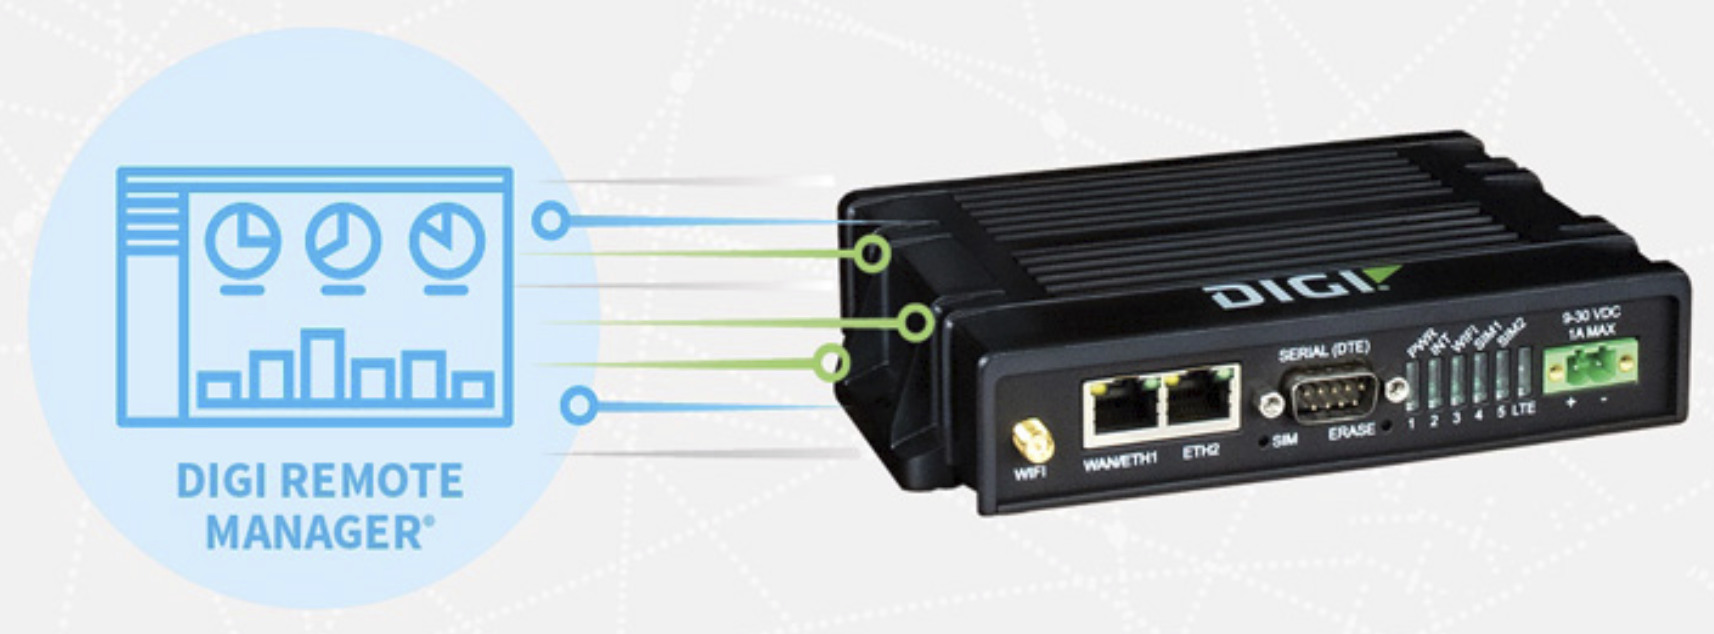 Digi router supports remote monitoring.